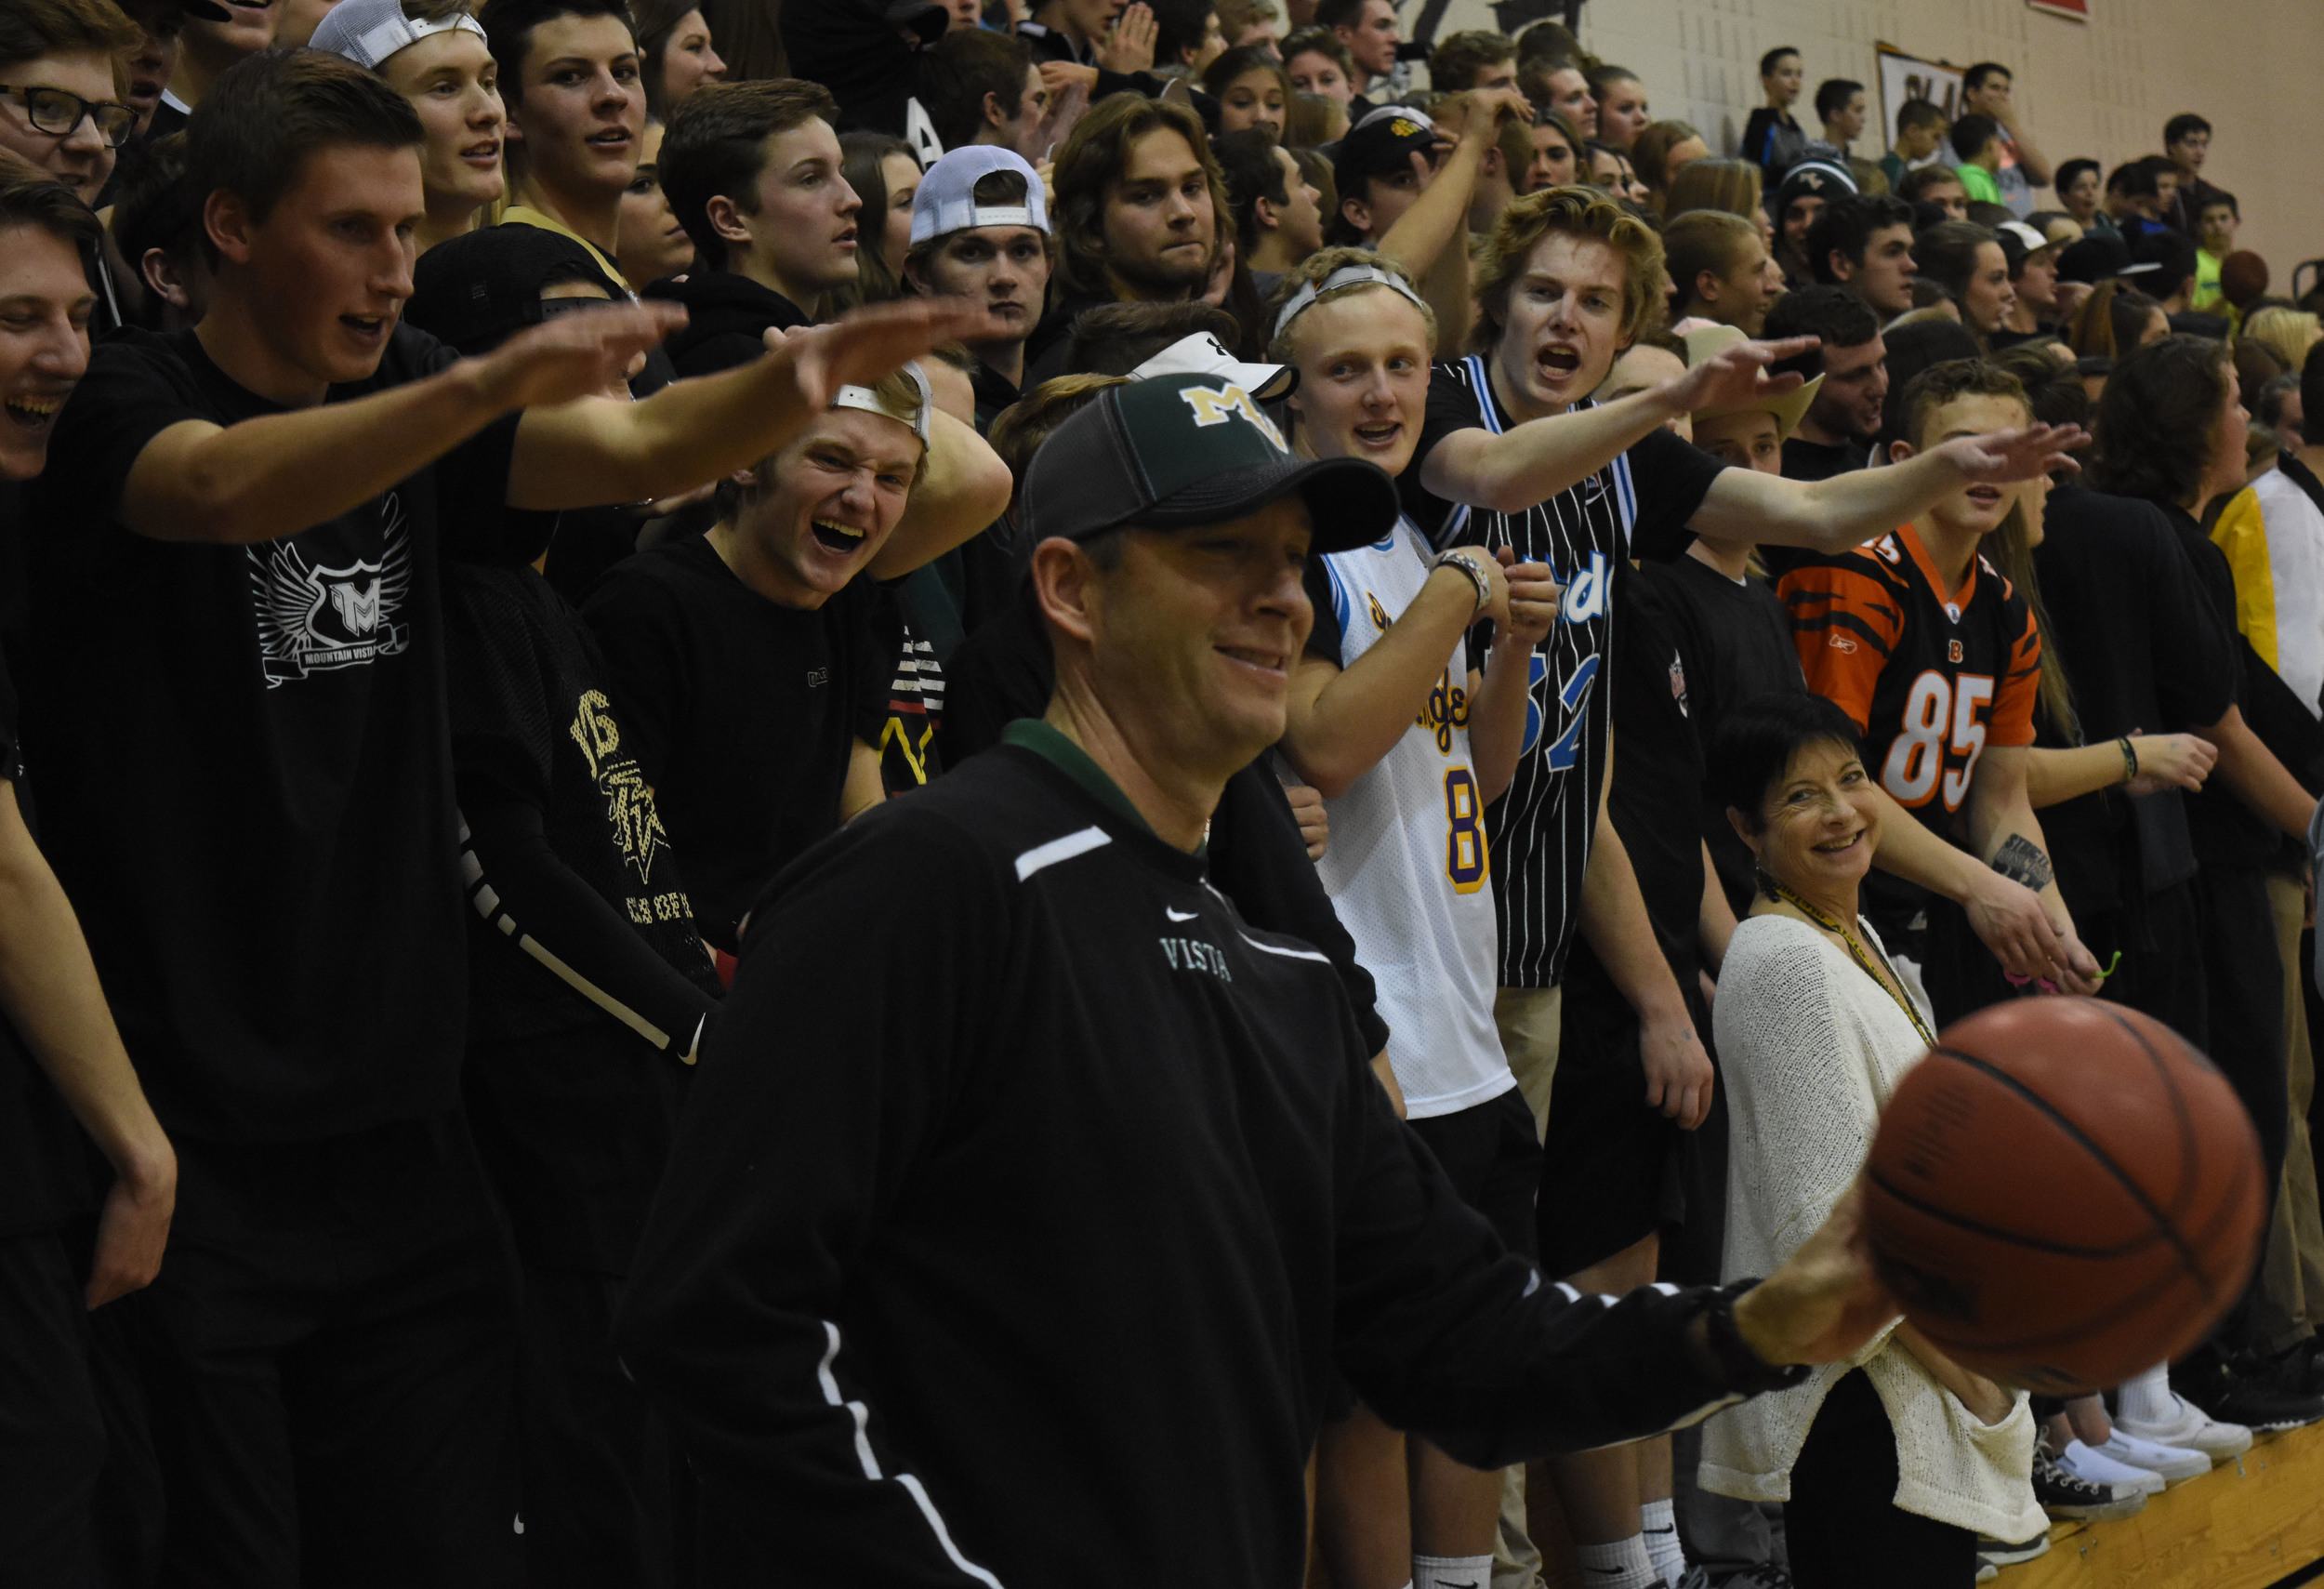 Principal Michael Weaver tosses a ball back to the court while the MV Unit gets hype.